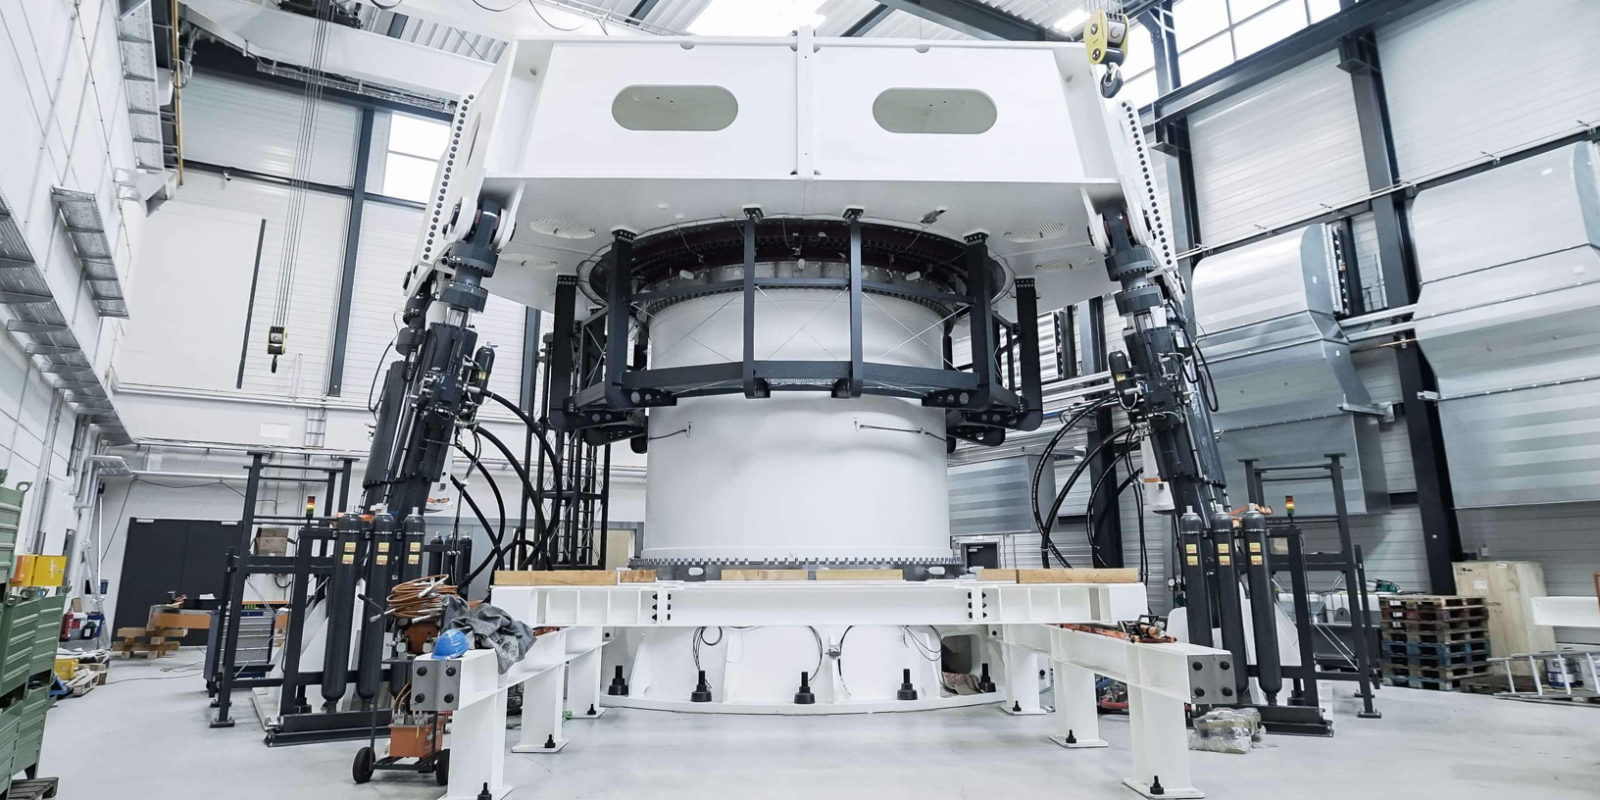 Accelerated_Bearing_Test_Bench_BEAT_6.1_Accelerated_Bearing_Test_Bench_Fraunhofer_IWES-Germany_IDOM_ADA